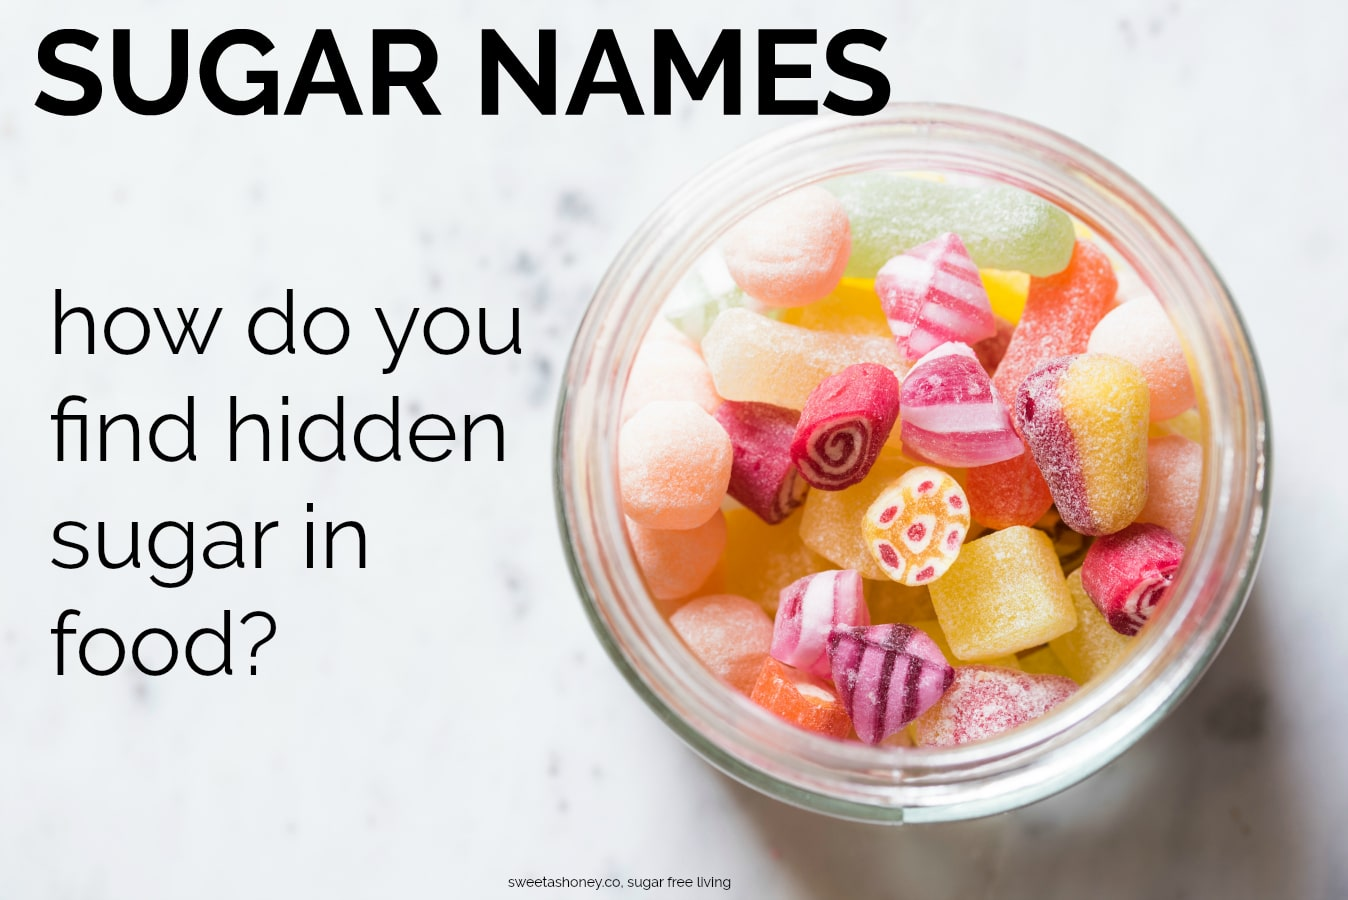 Sugar names how do you find hidden sugar in food